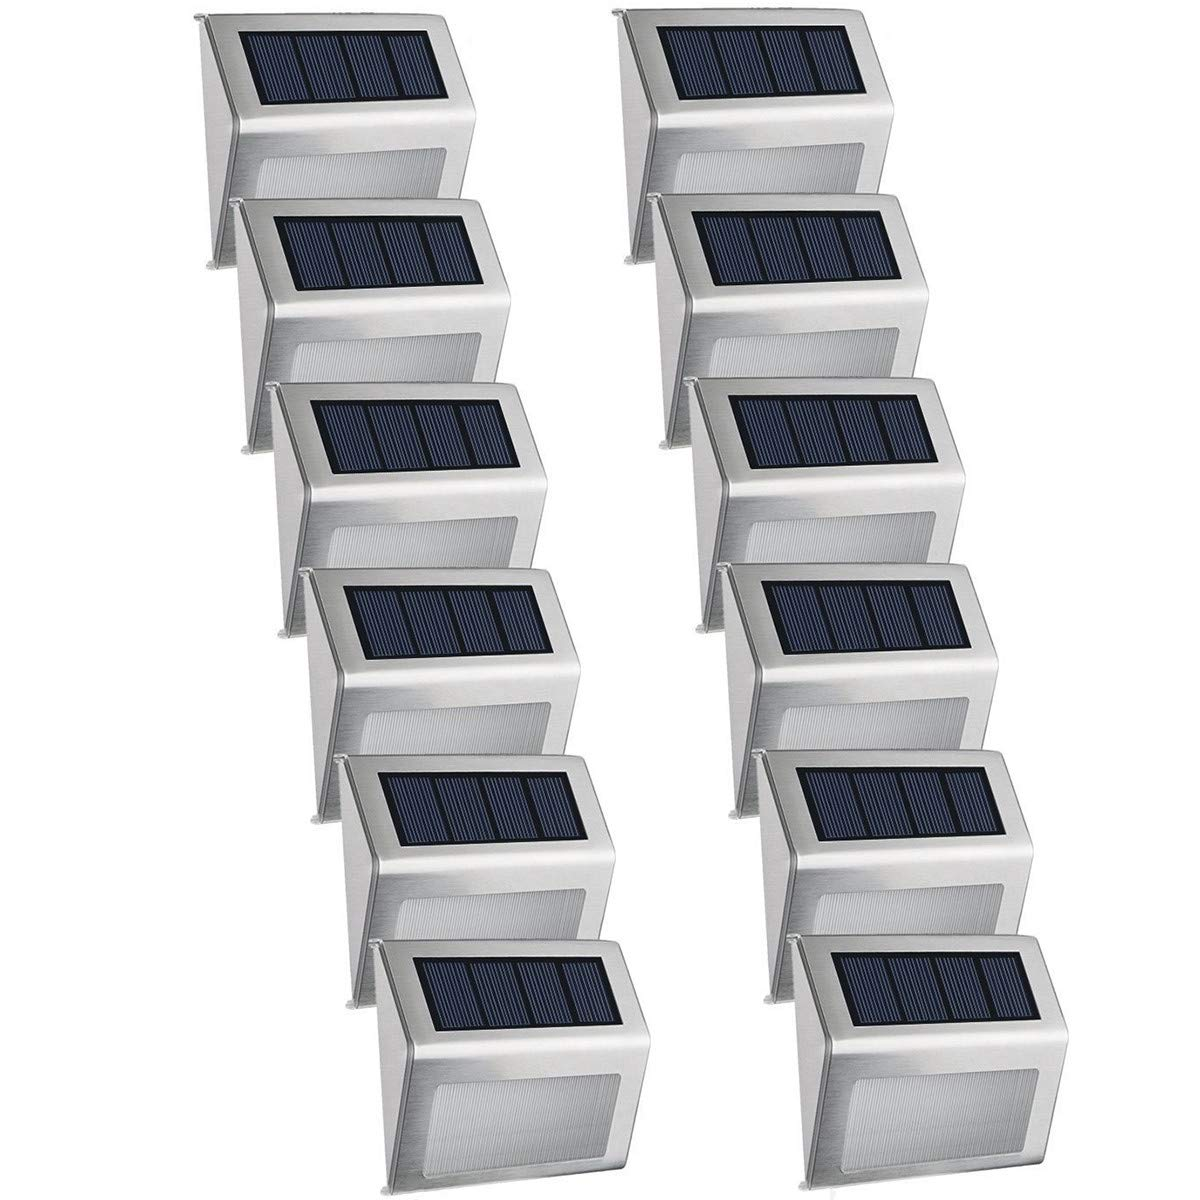 Easternstar Solar Powered 3 LED Step Light Stainless Steel Outdoor Waterproof Stair Lamp for Deck Patio Yard Path Fence Post (12 Pack)